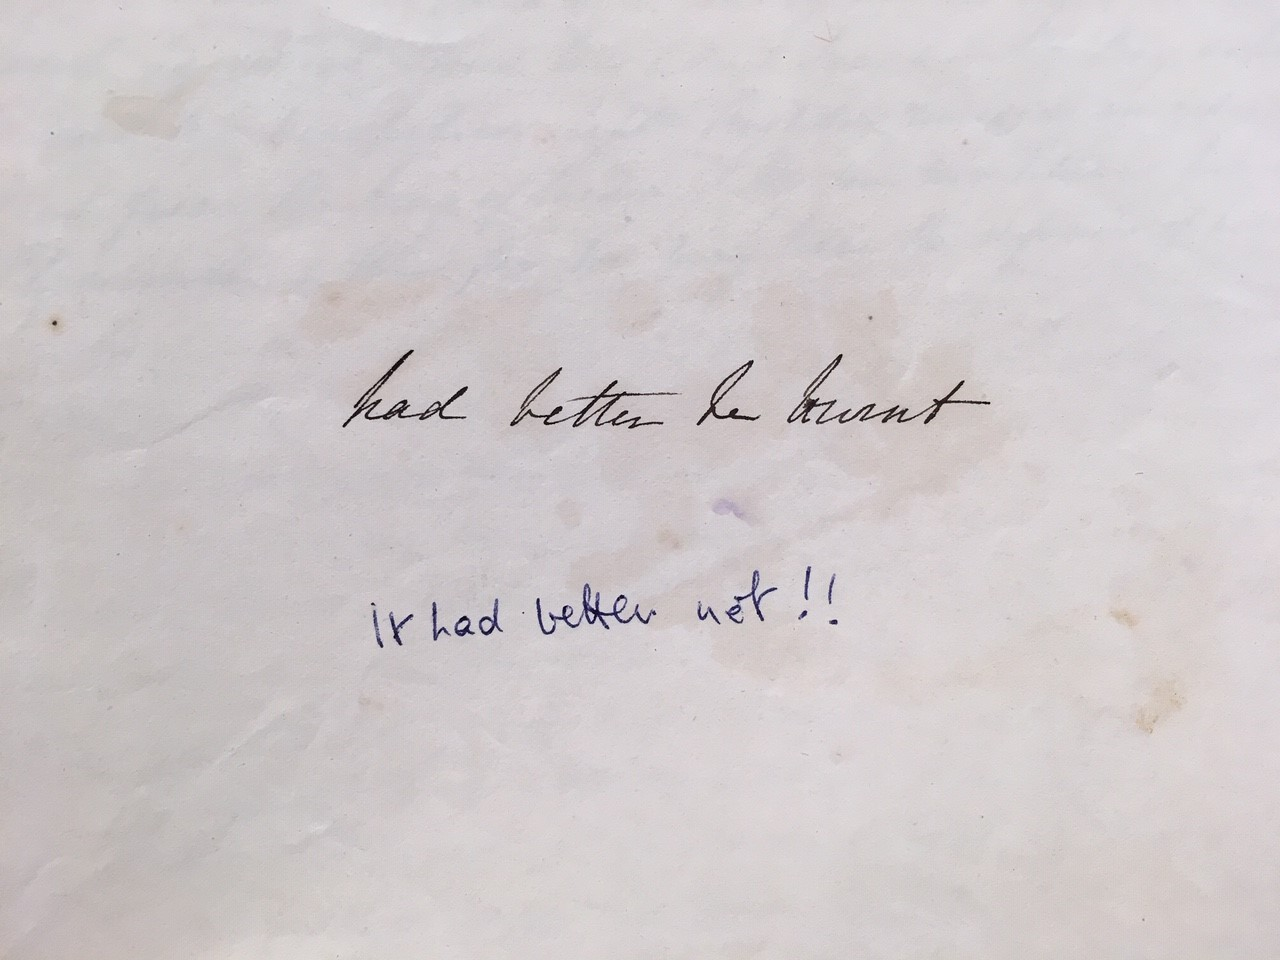 Intriguing messages left by different family members over time